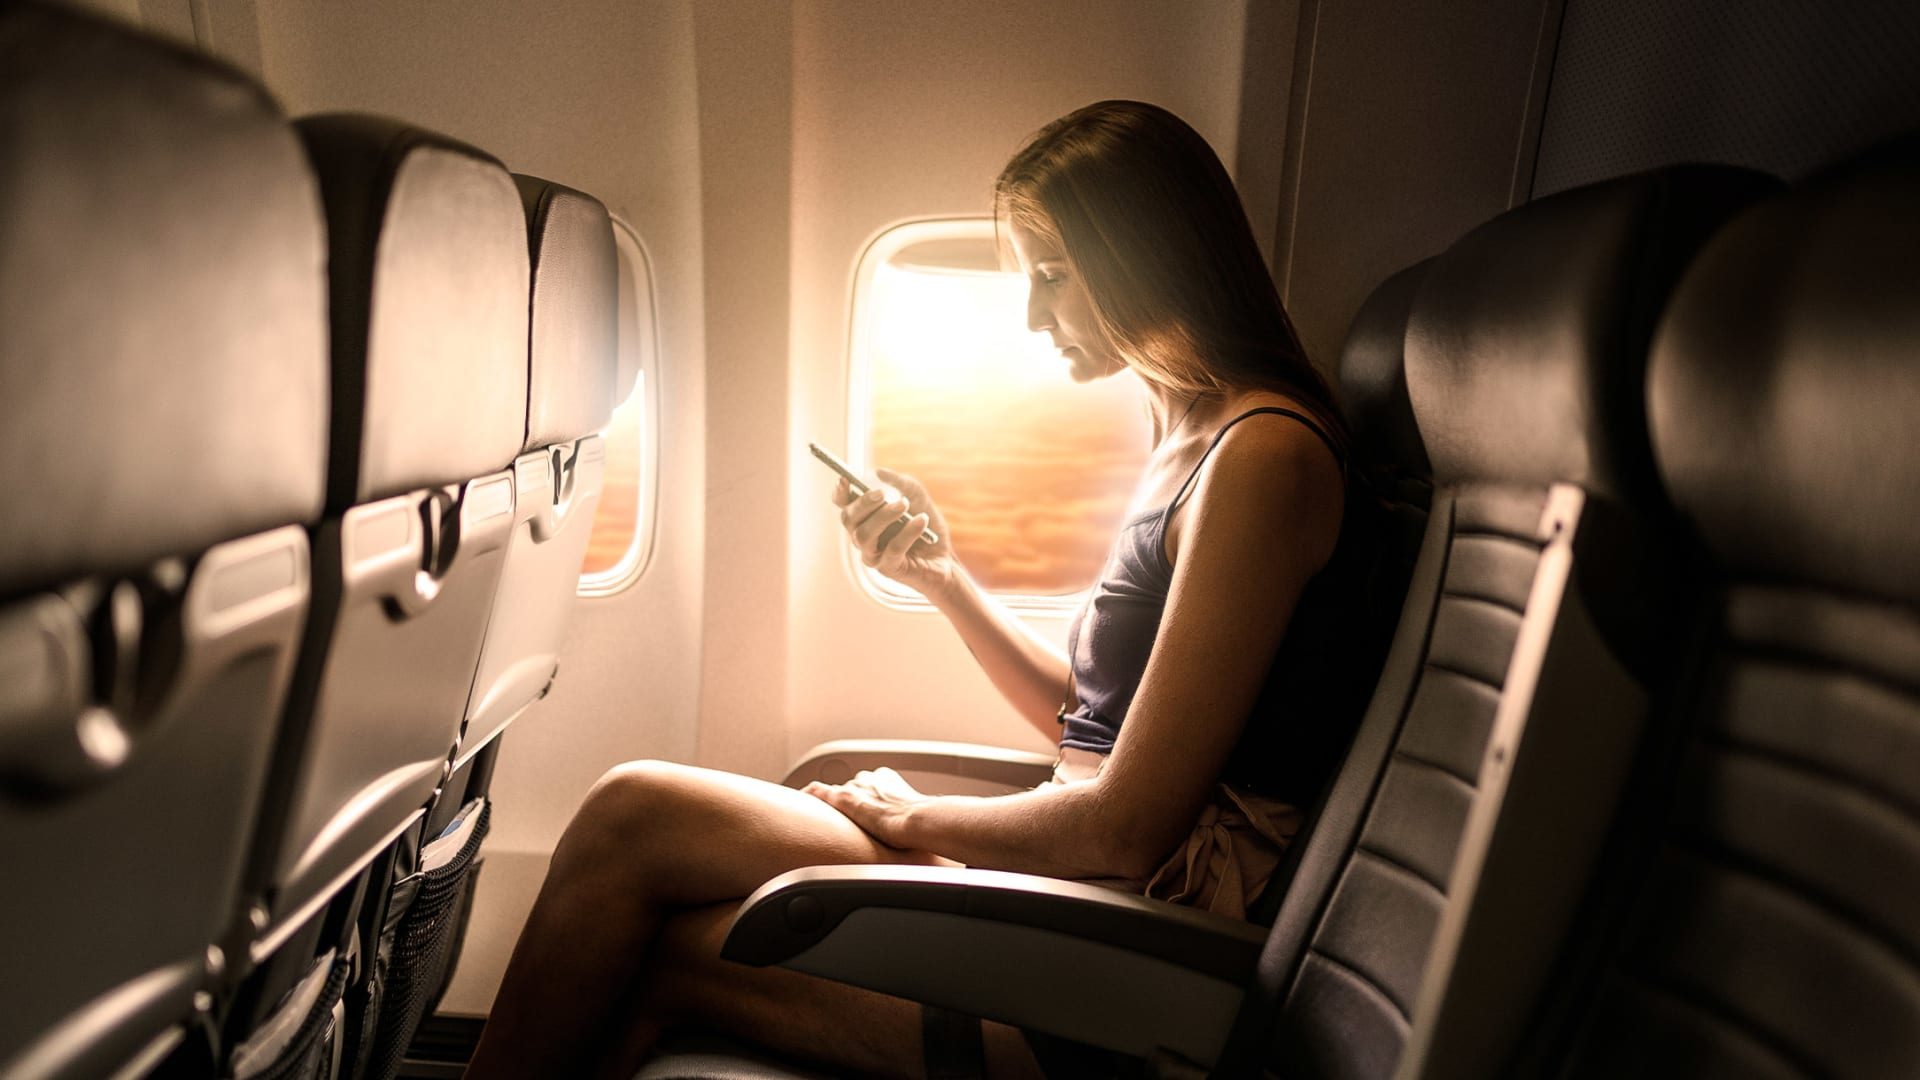 Traveling Again Soon? Here Are 7 Must-Have iOS Travel Apps You Should Download Before You Go